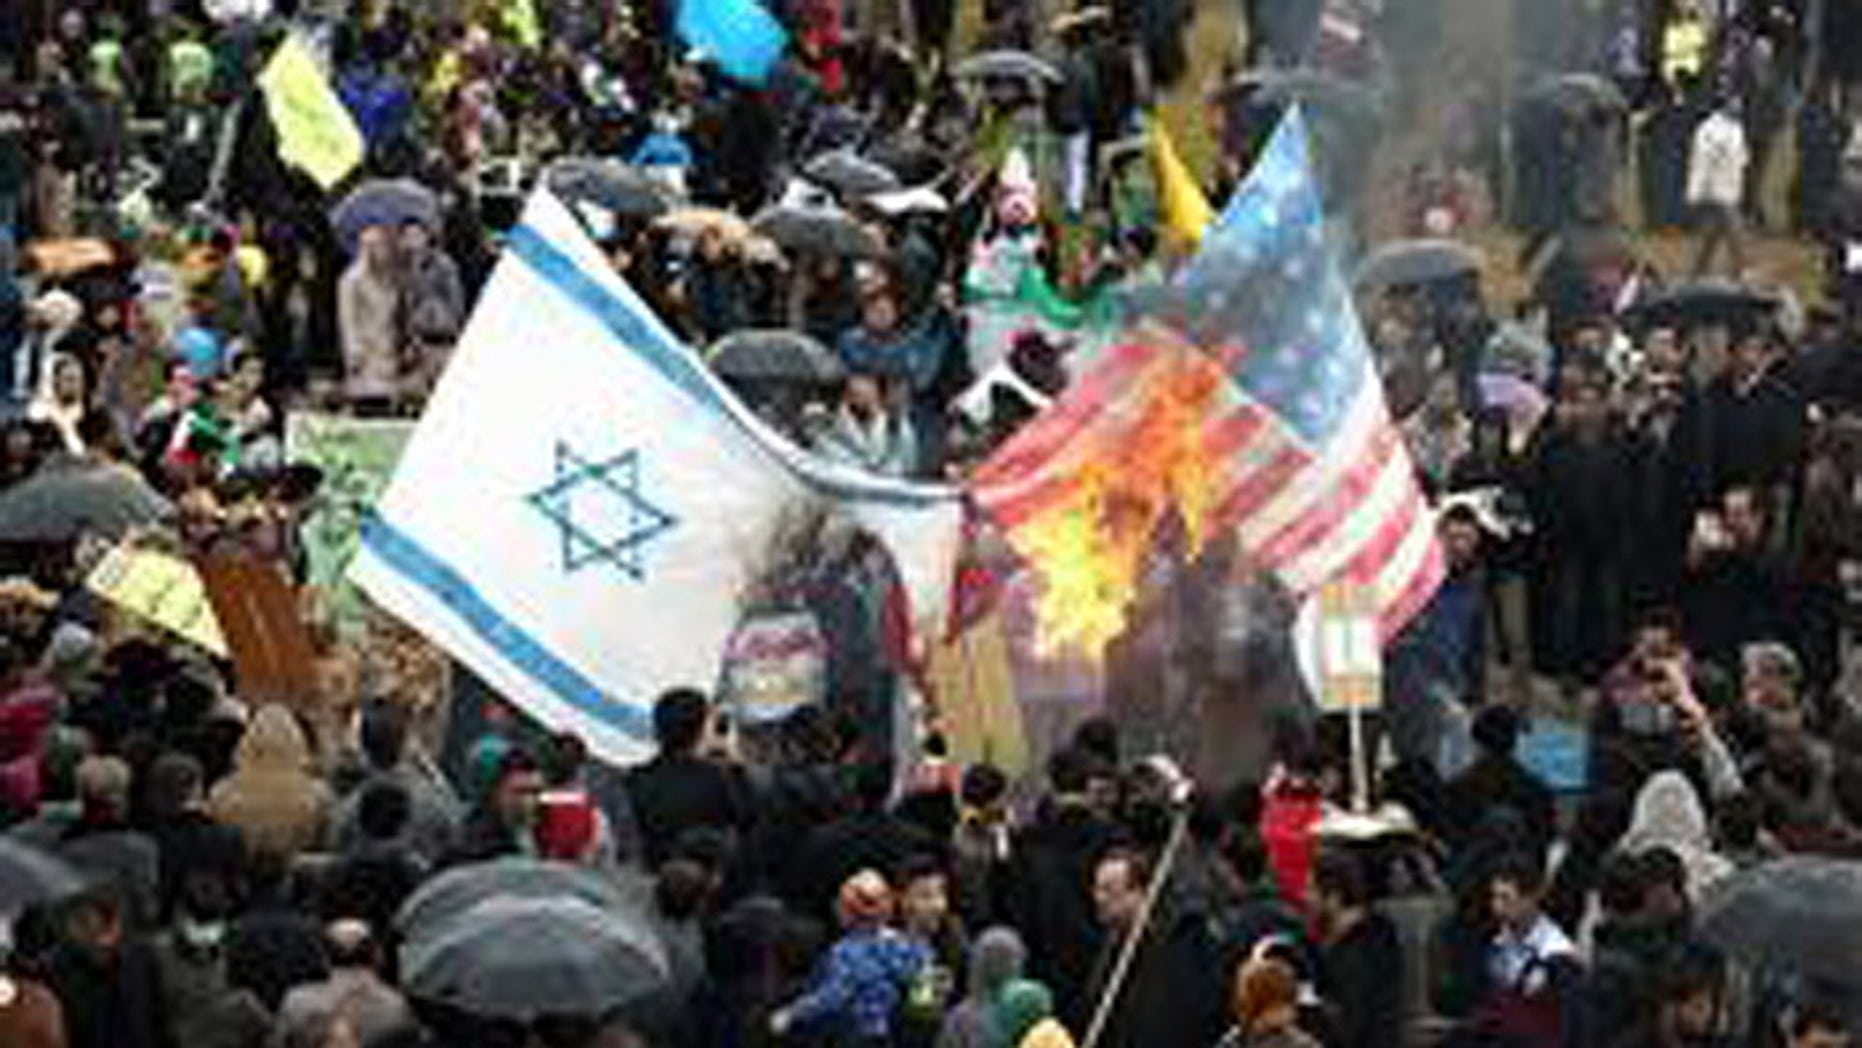 The Feb. 11 event marked Iran's overthrow of the Shah, and featured anti-American and anti-Israel sentiments. (MEMRI)